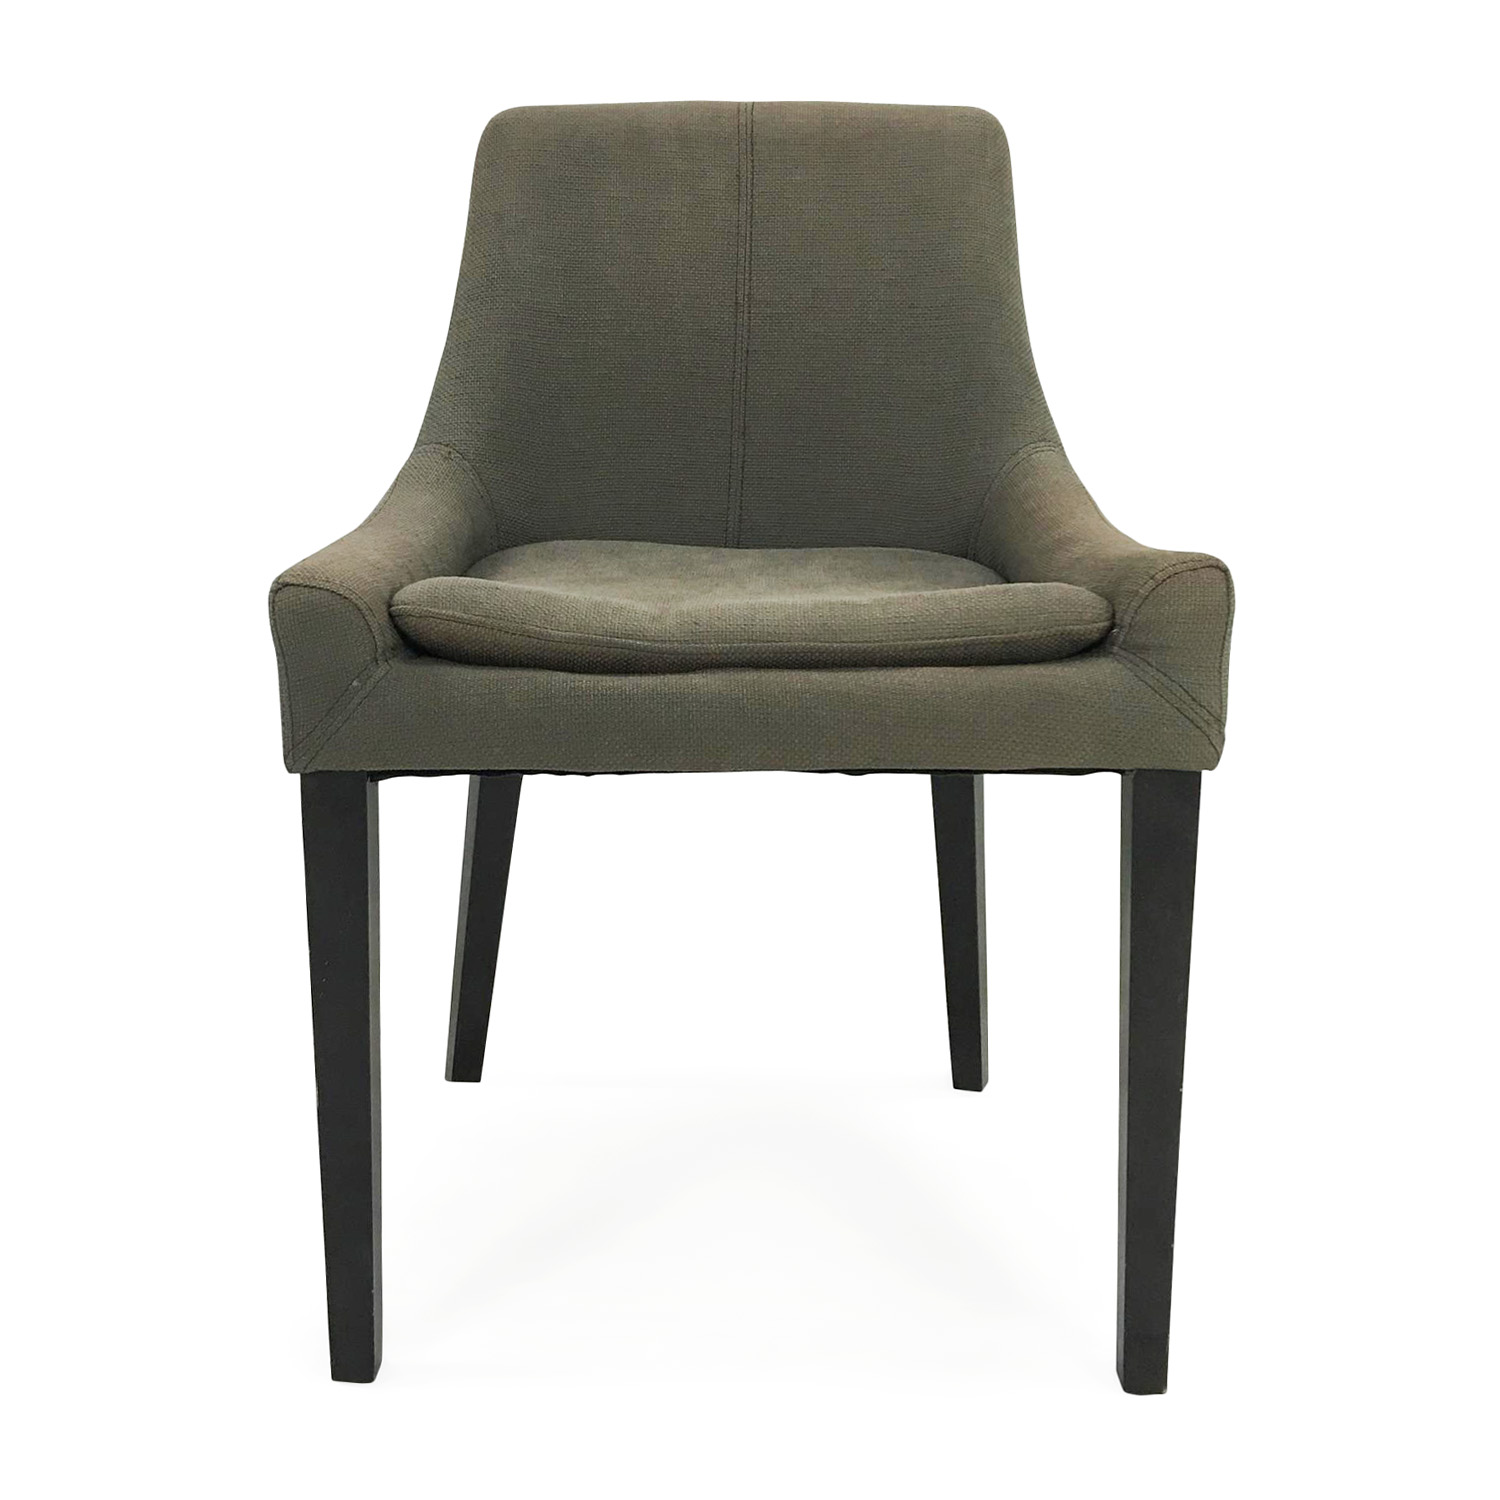 West Elm West Elm Pewter Chair discount